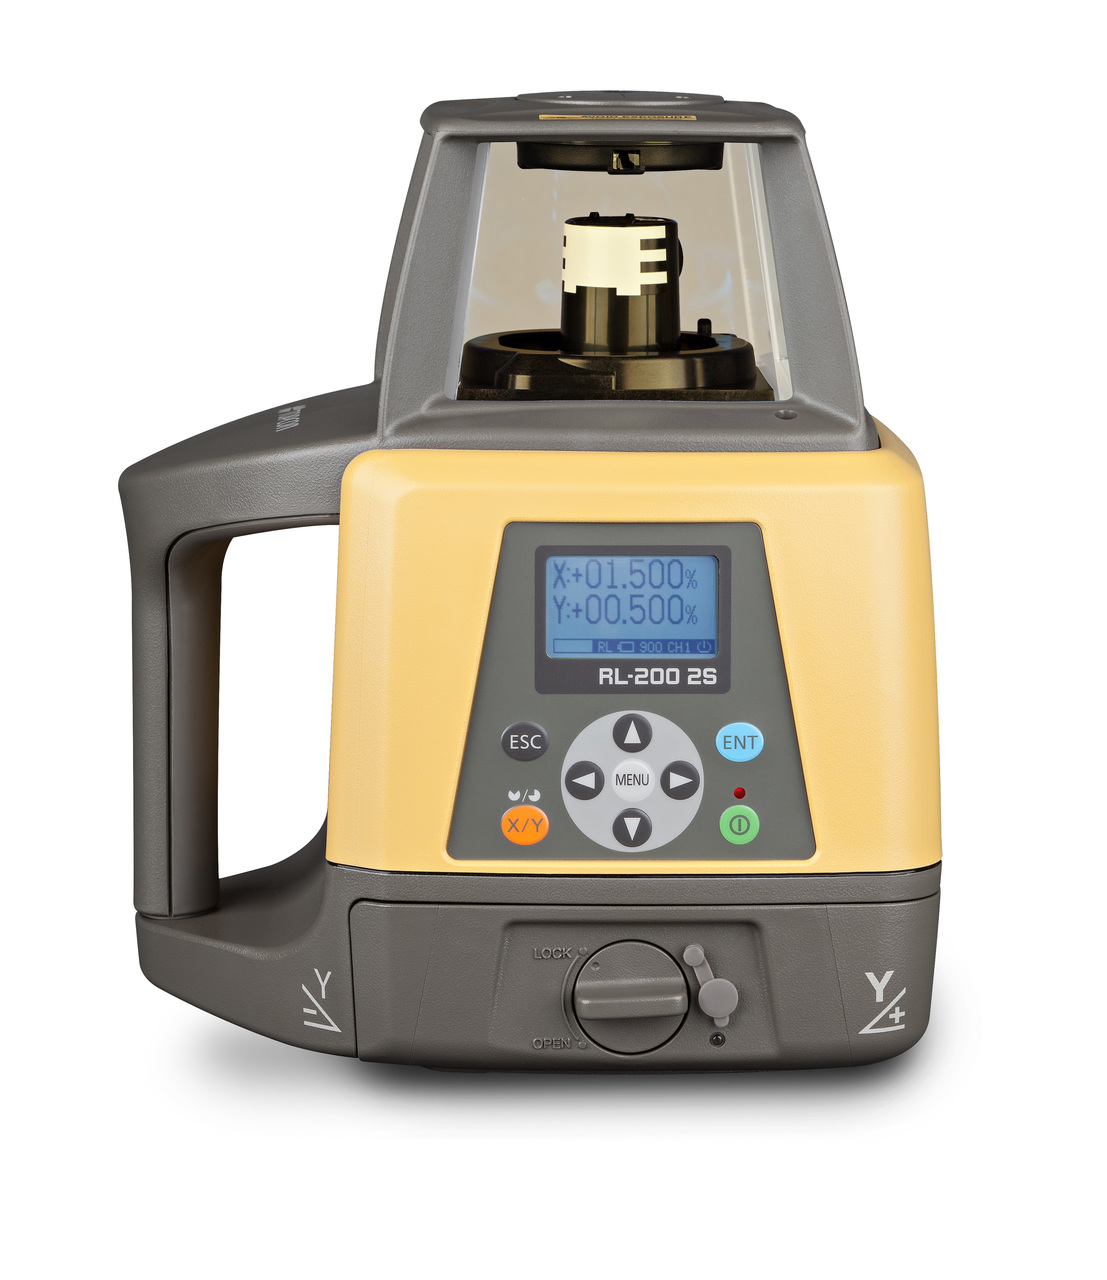 Topcon RL-200 2S High Accuracy Slope Laser Alkaline